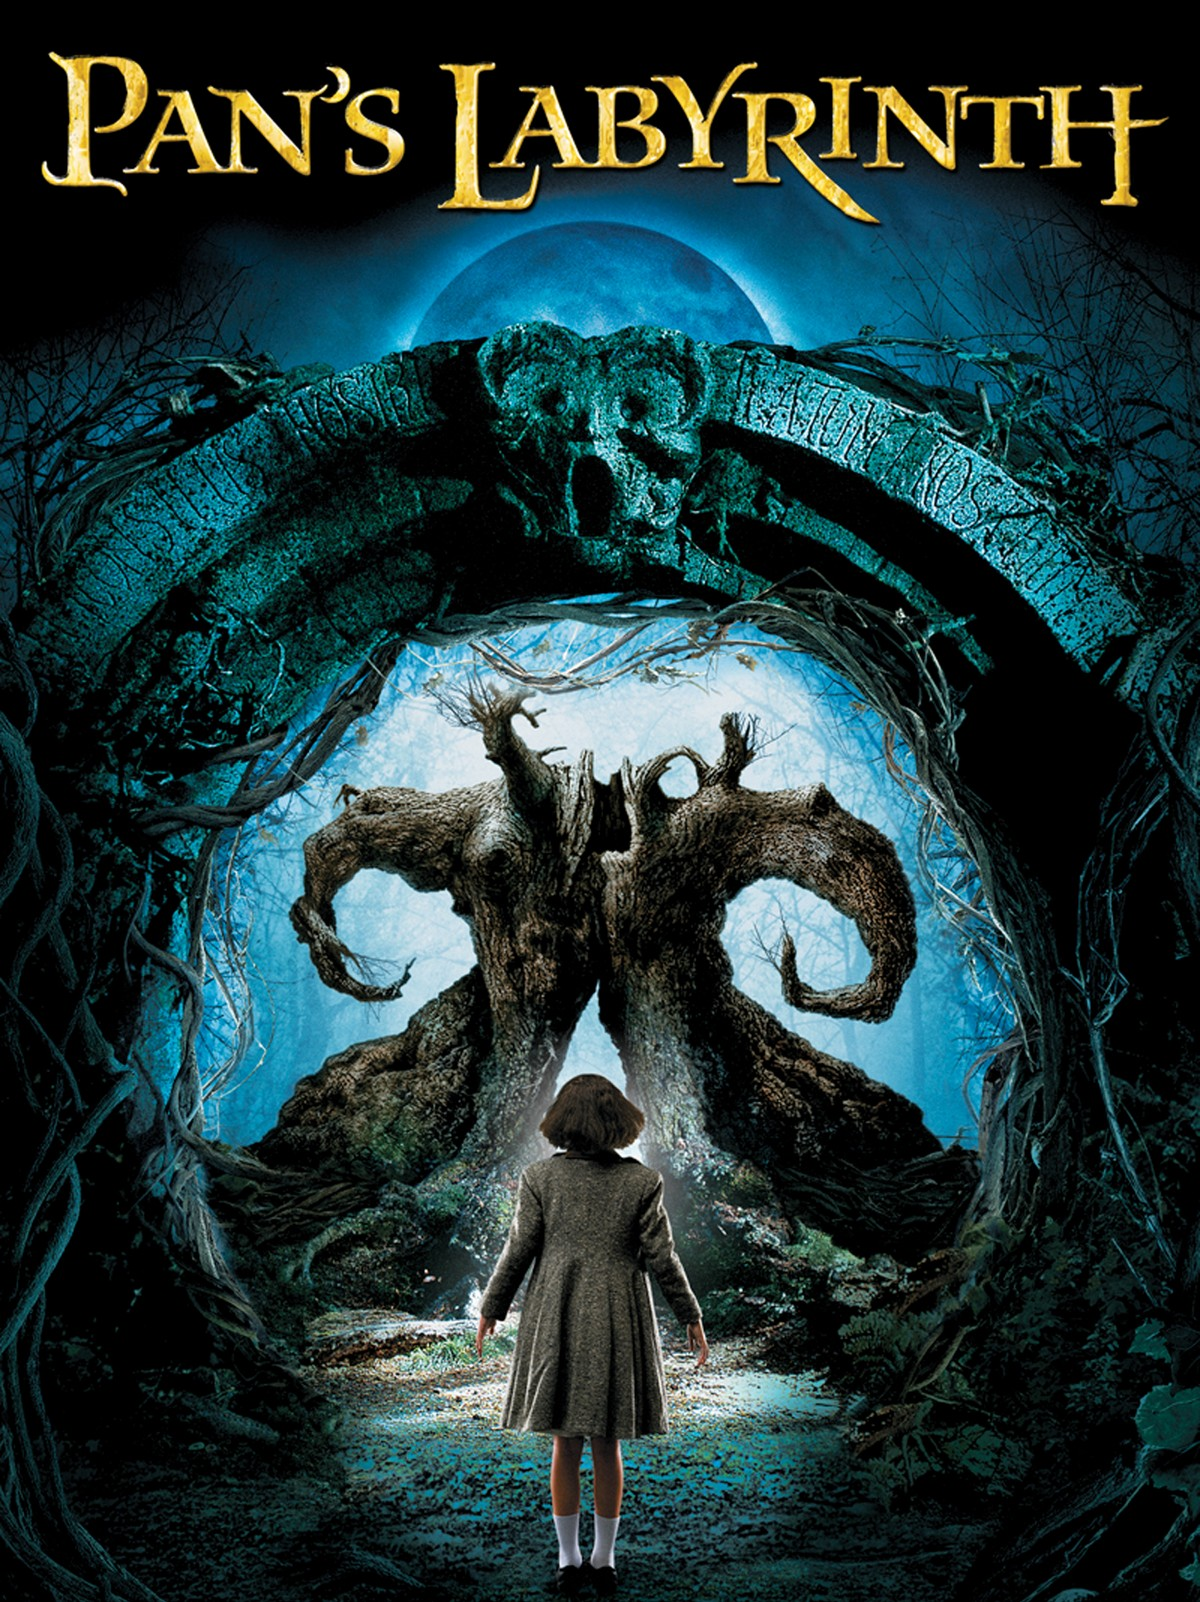 Film Fest Gent Pan's Labyrinth